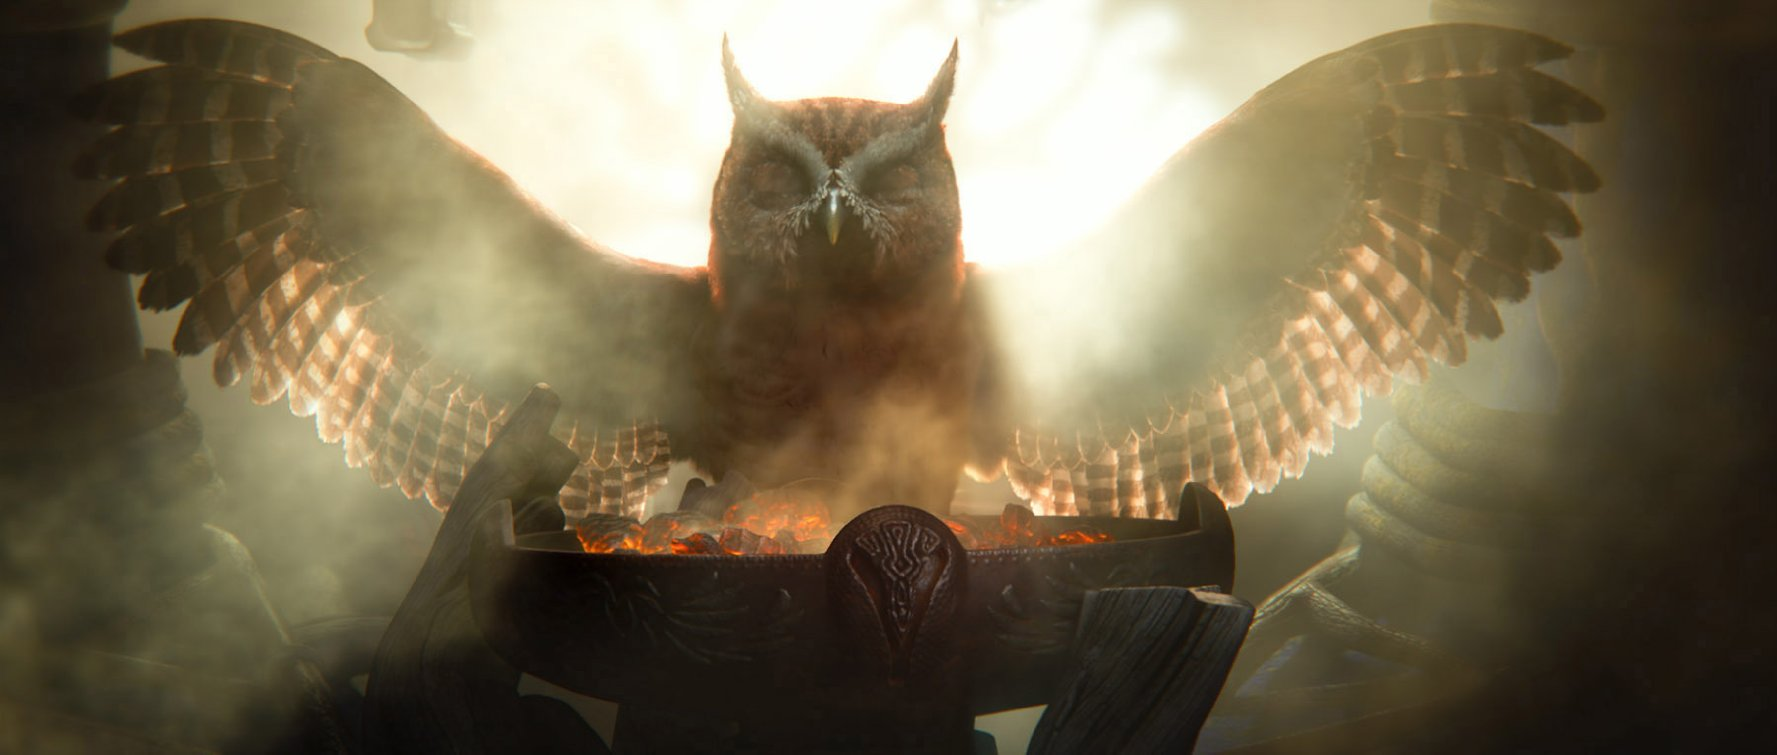 Legends of the Guardians The Owls of Ga Hoole